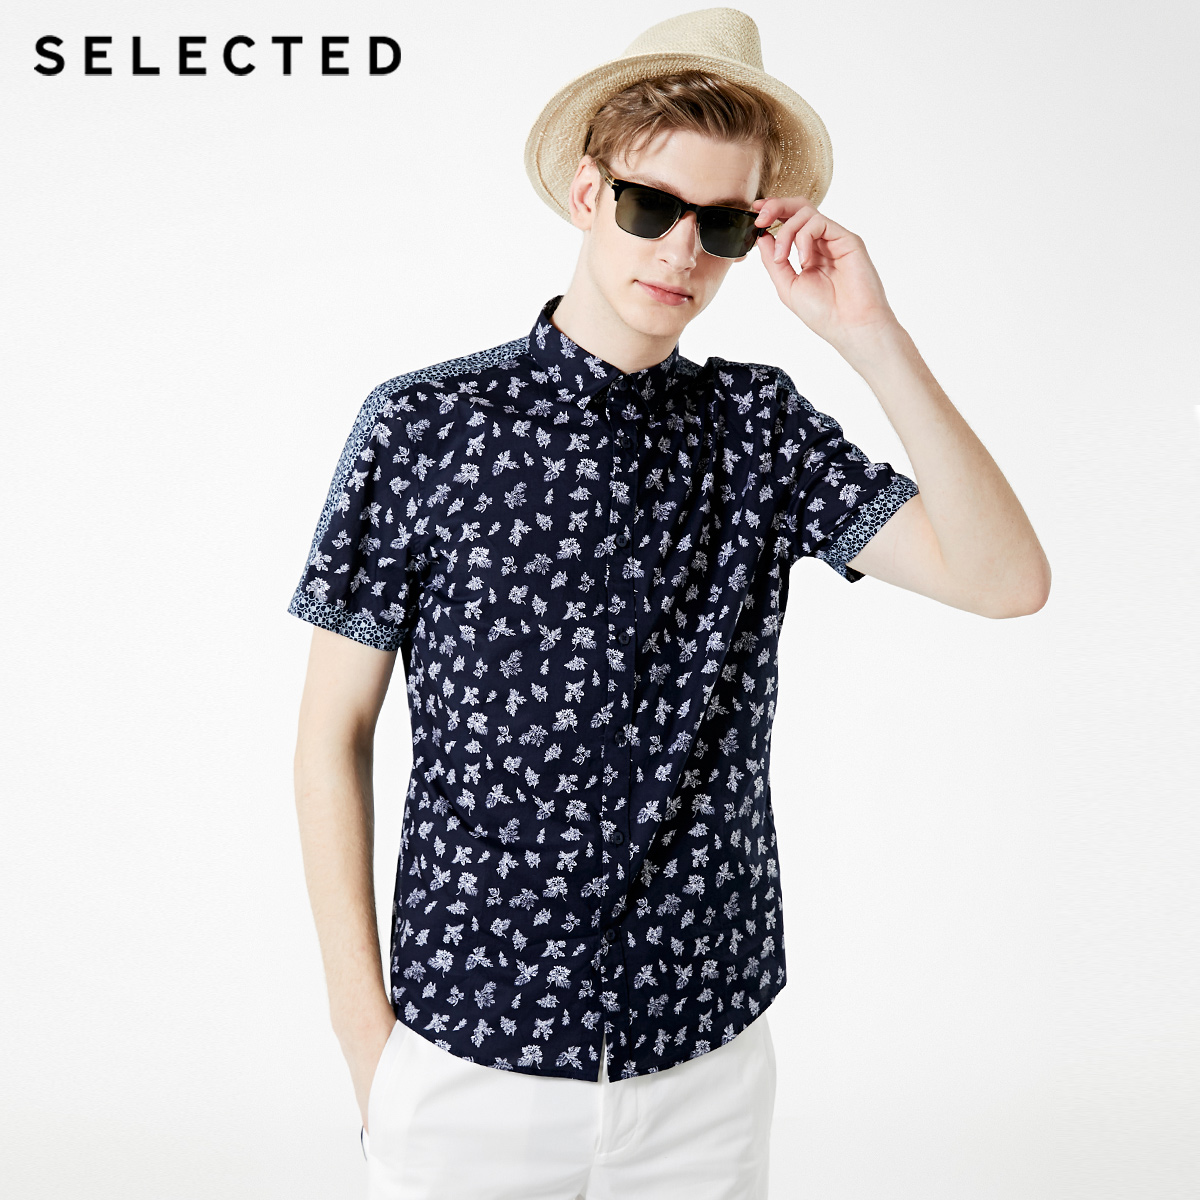 SELECTED Men's 100% Cotton Printed Short-sleeved Shirt S|419204568